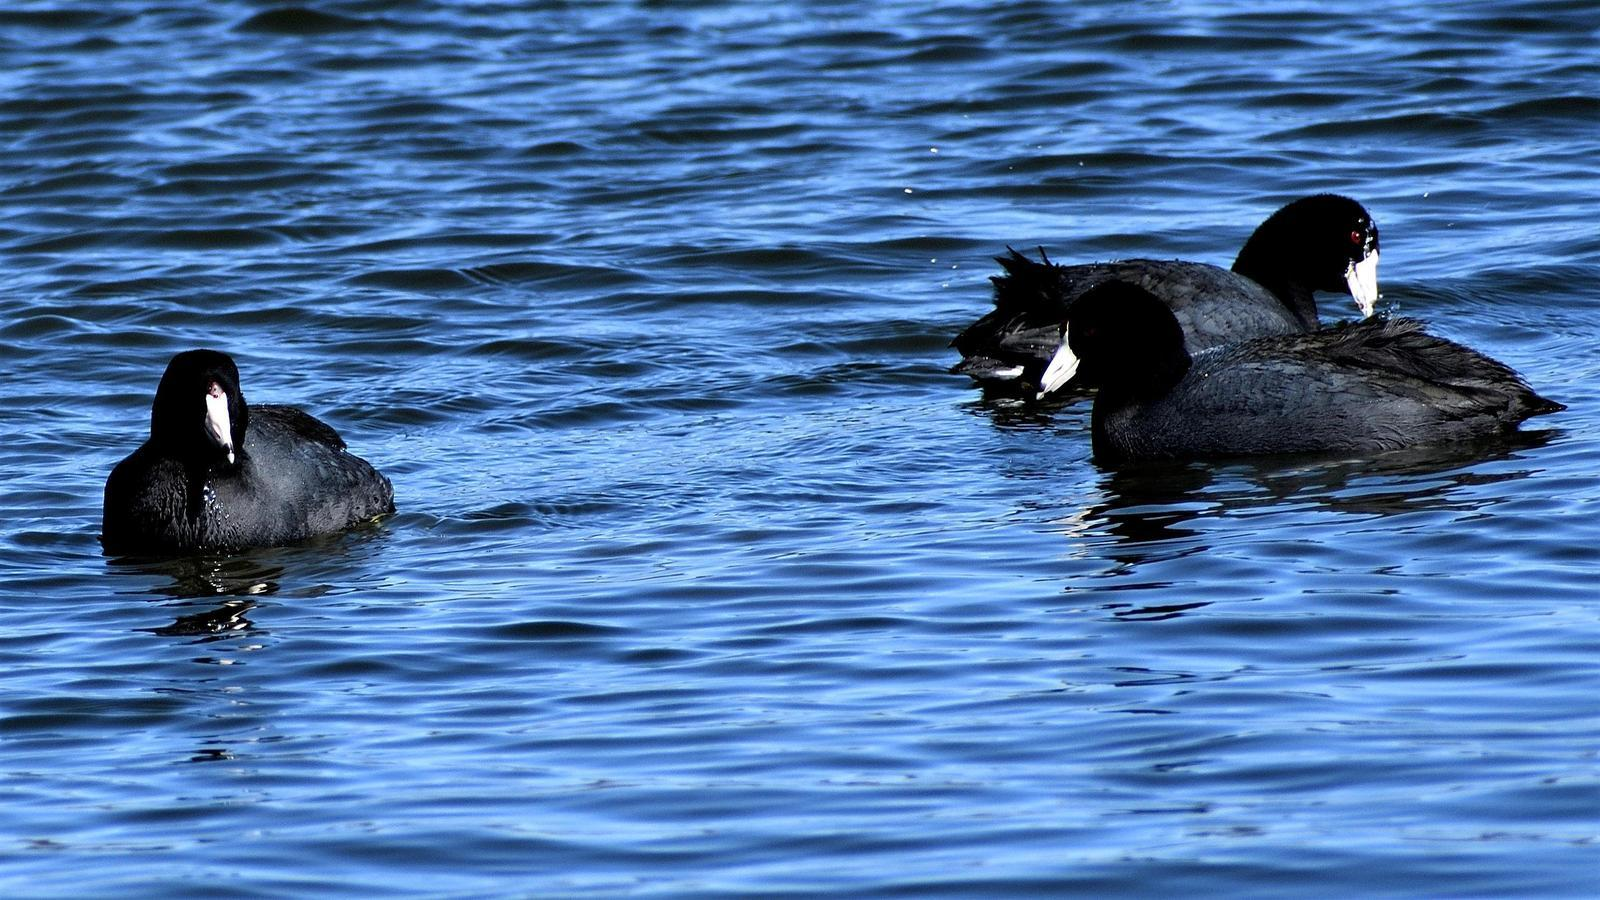 American Coot (Red-shielded) Photo by RM Beck